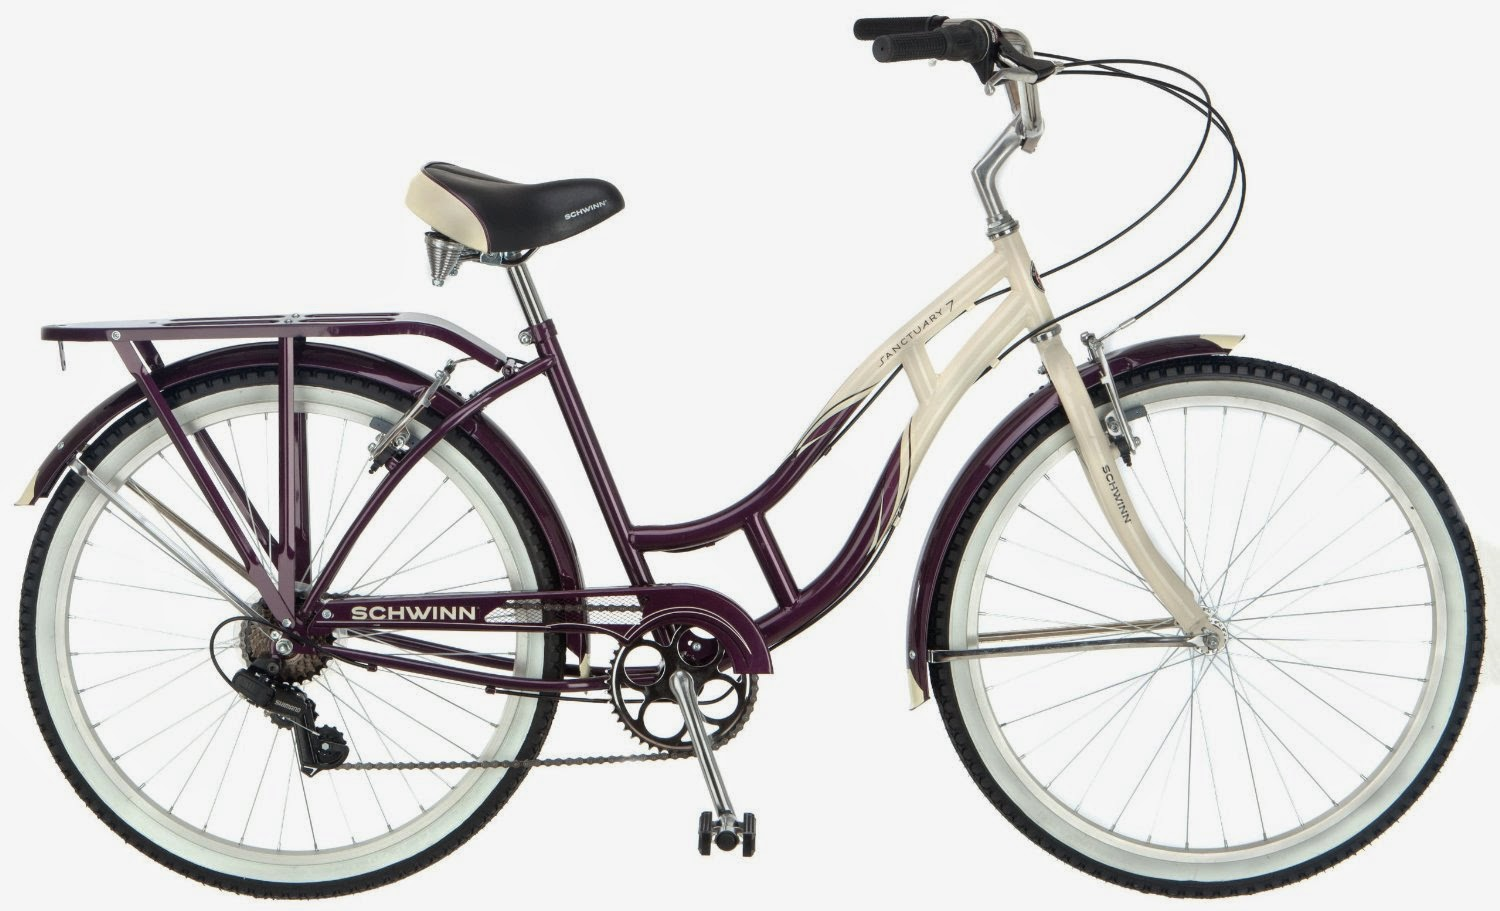 Schwinn Women's Sanctuary 7-Speed Cruiser Bicycle, picture, review features & specifications